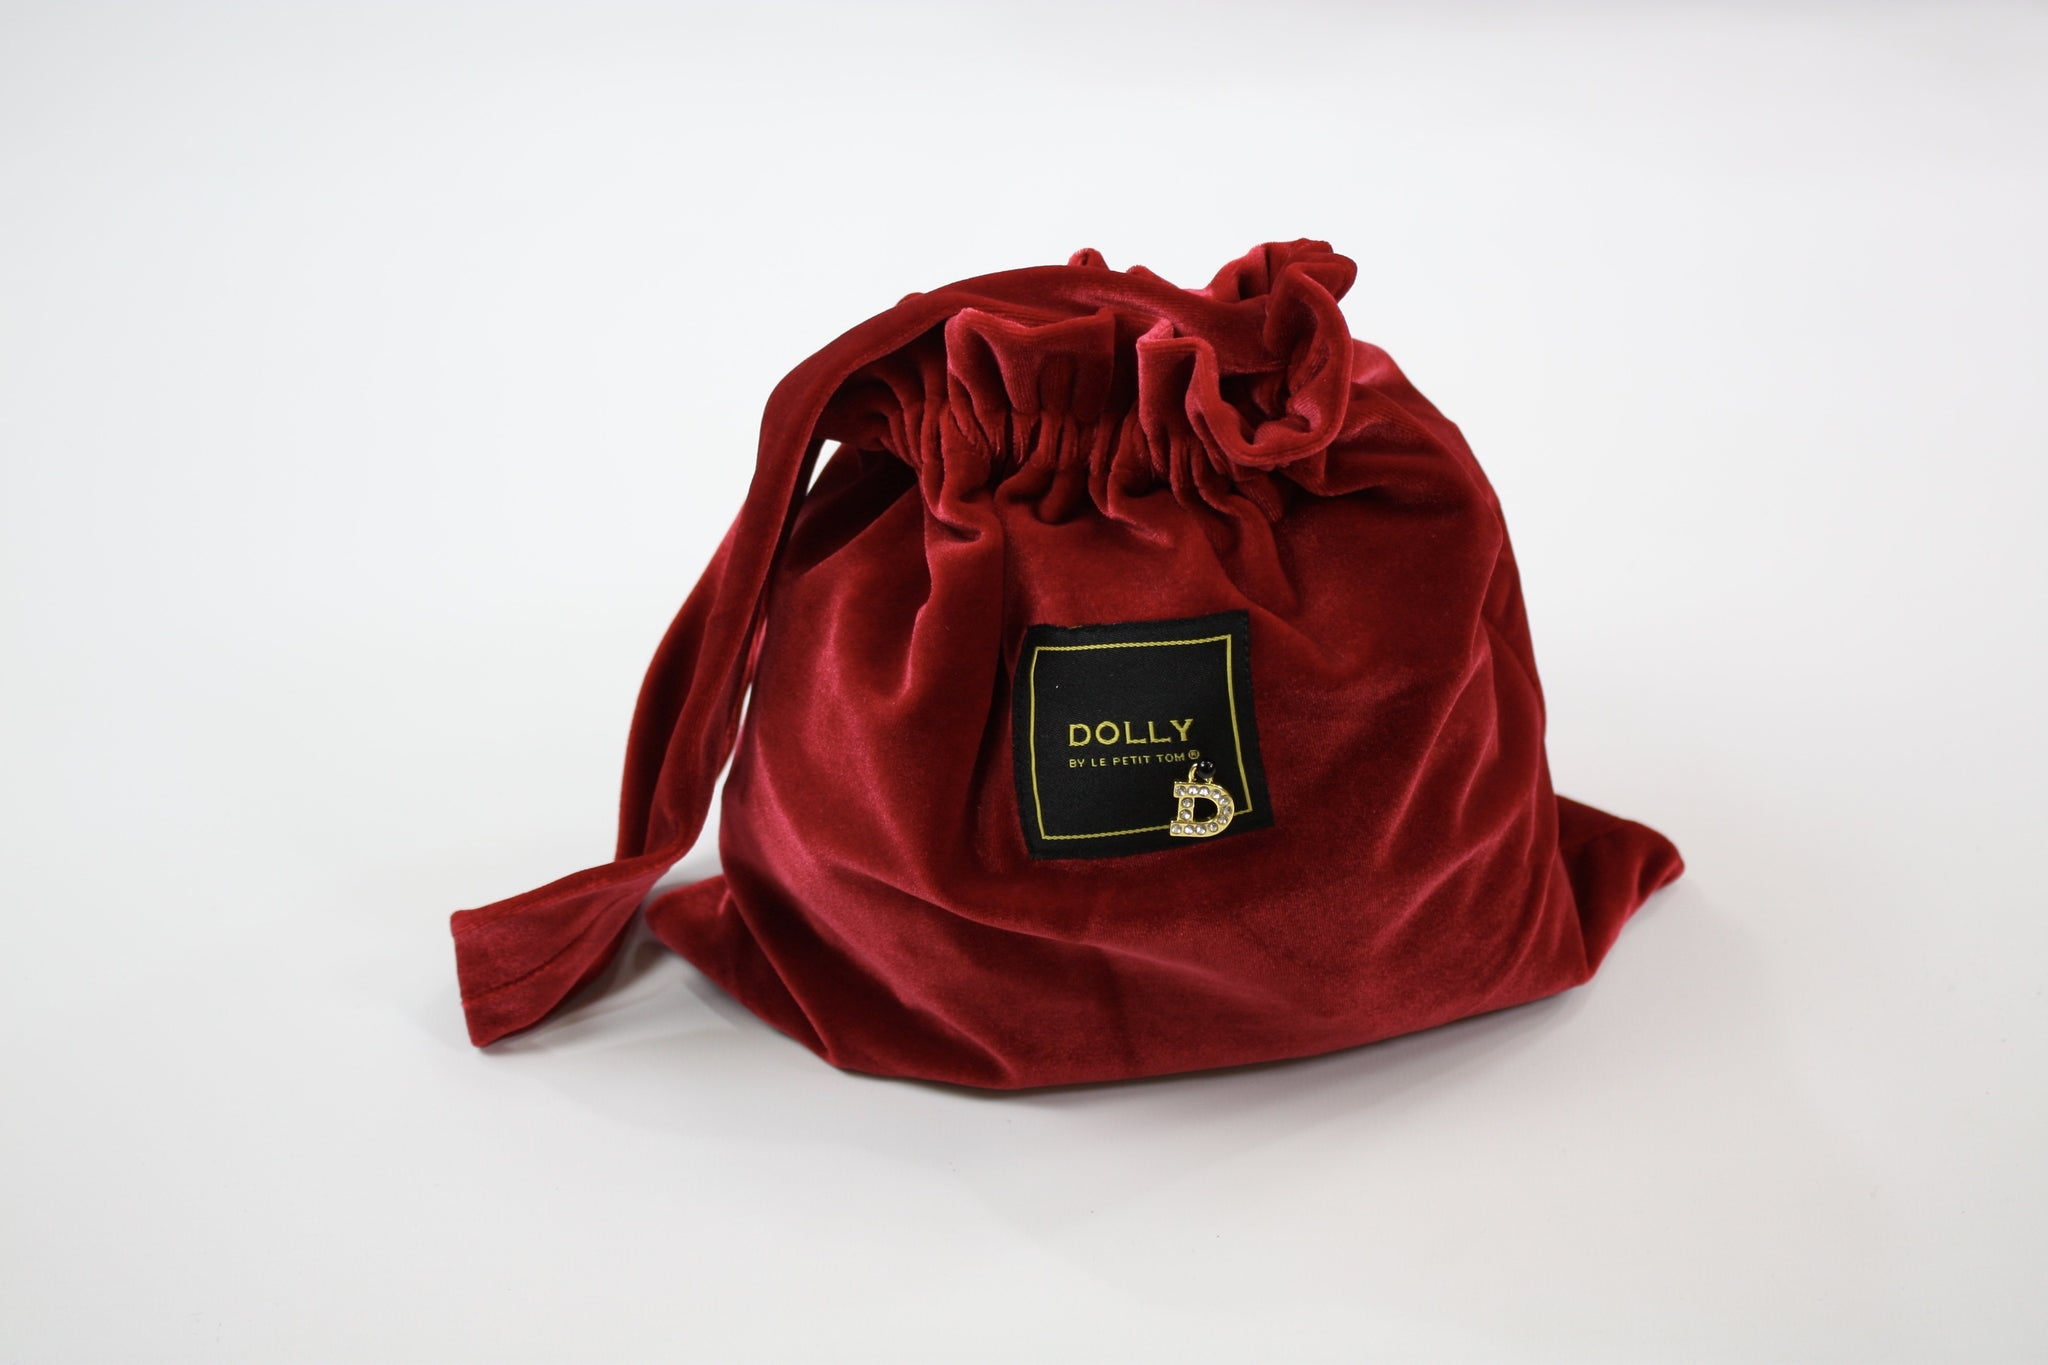 DOLLY by Le Petit Tom ® VELVET POUCH BAG red